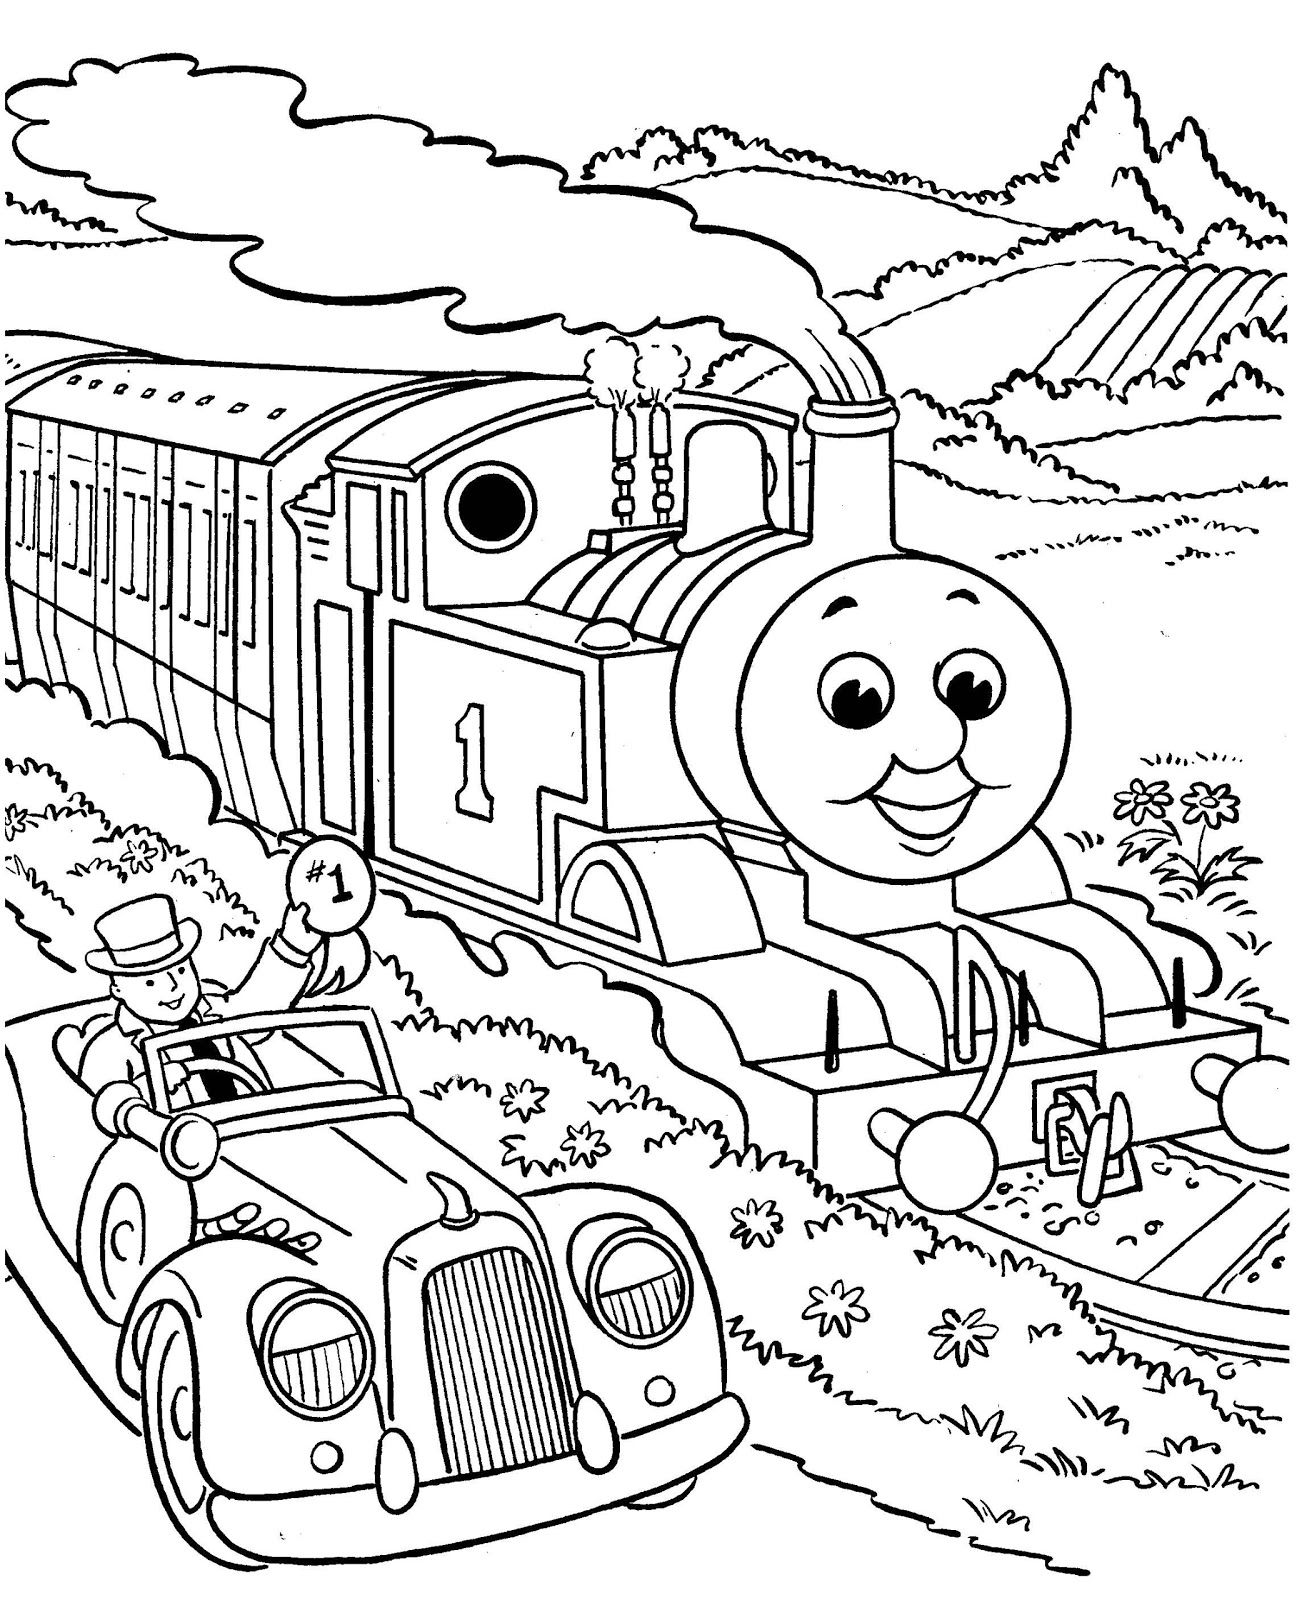 Free printable coloring pages for all ages. | Coloring | Pinterest